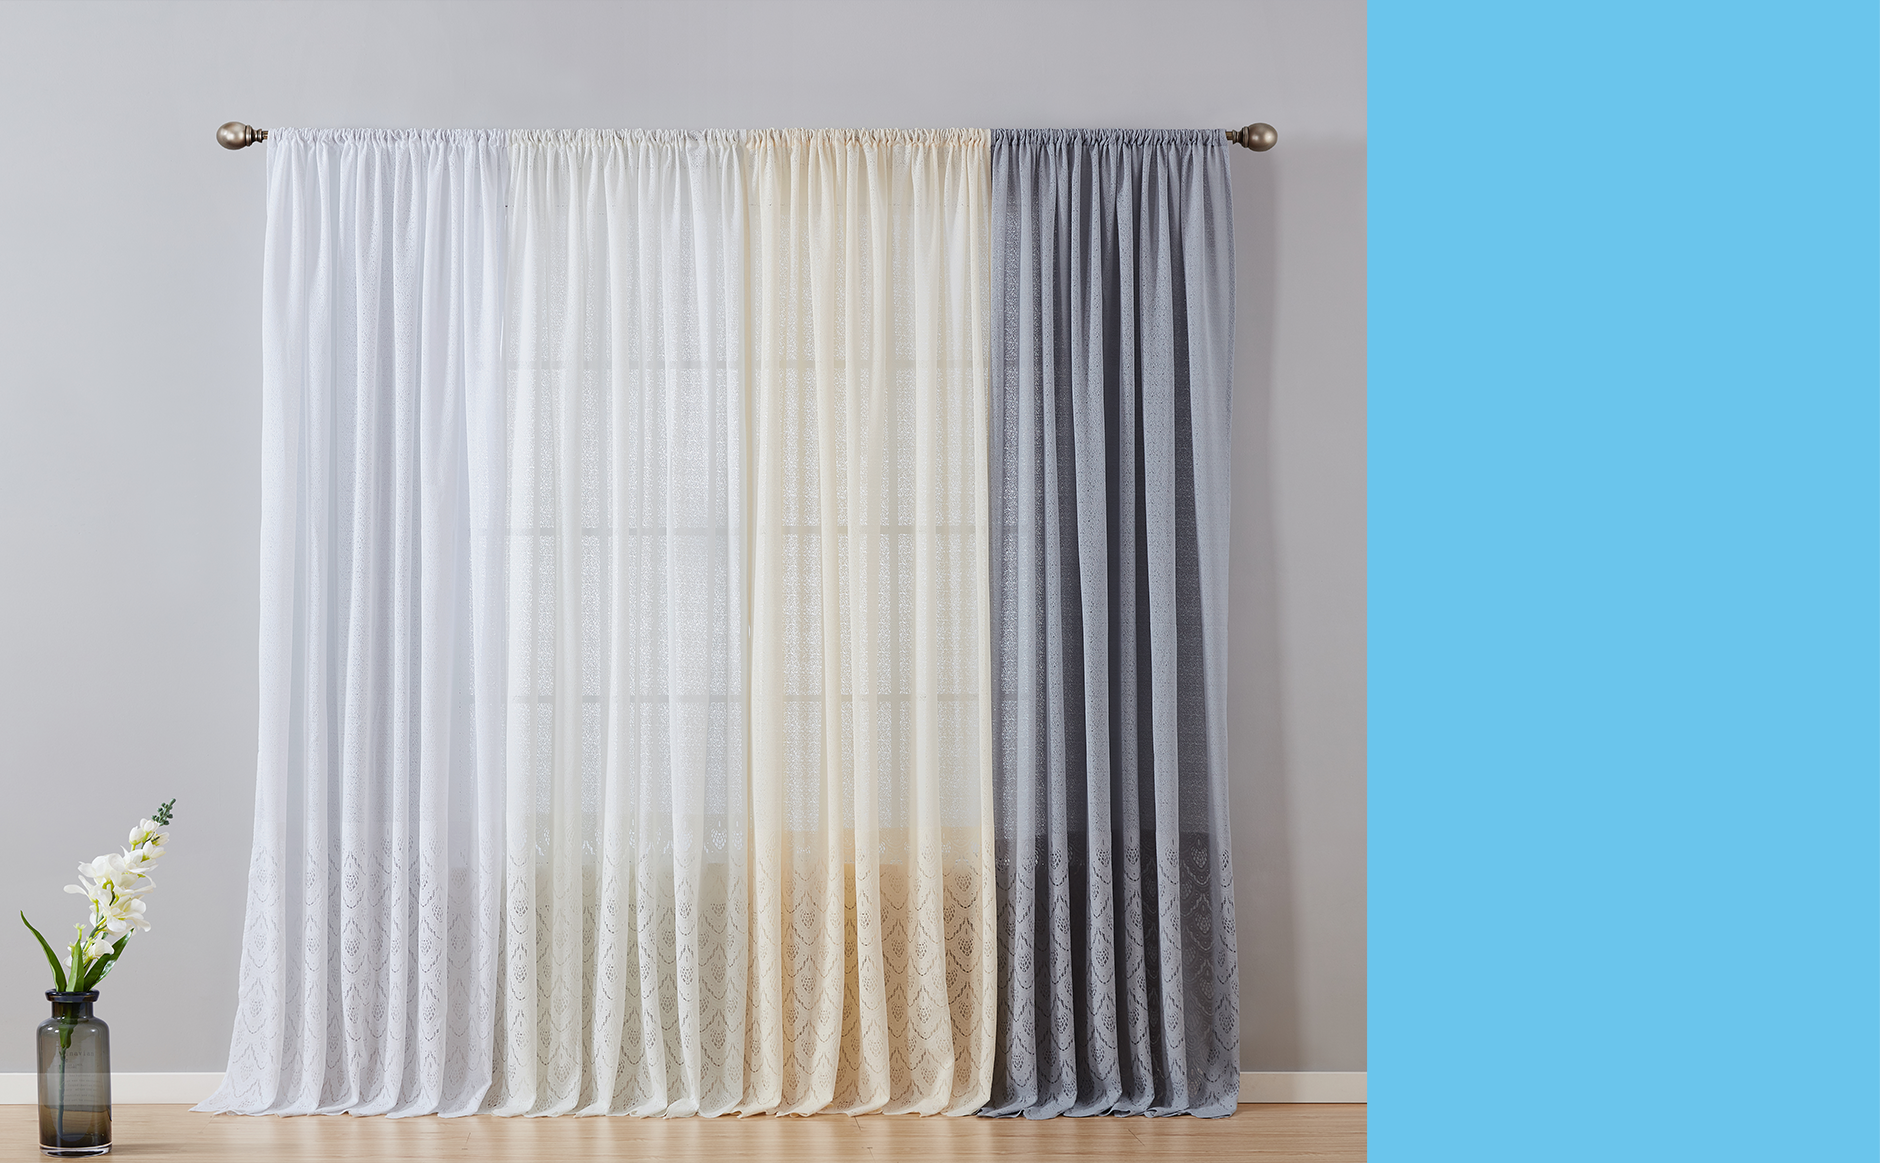 Decorative Sheer Curtains